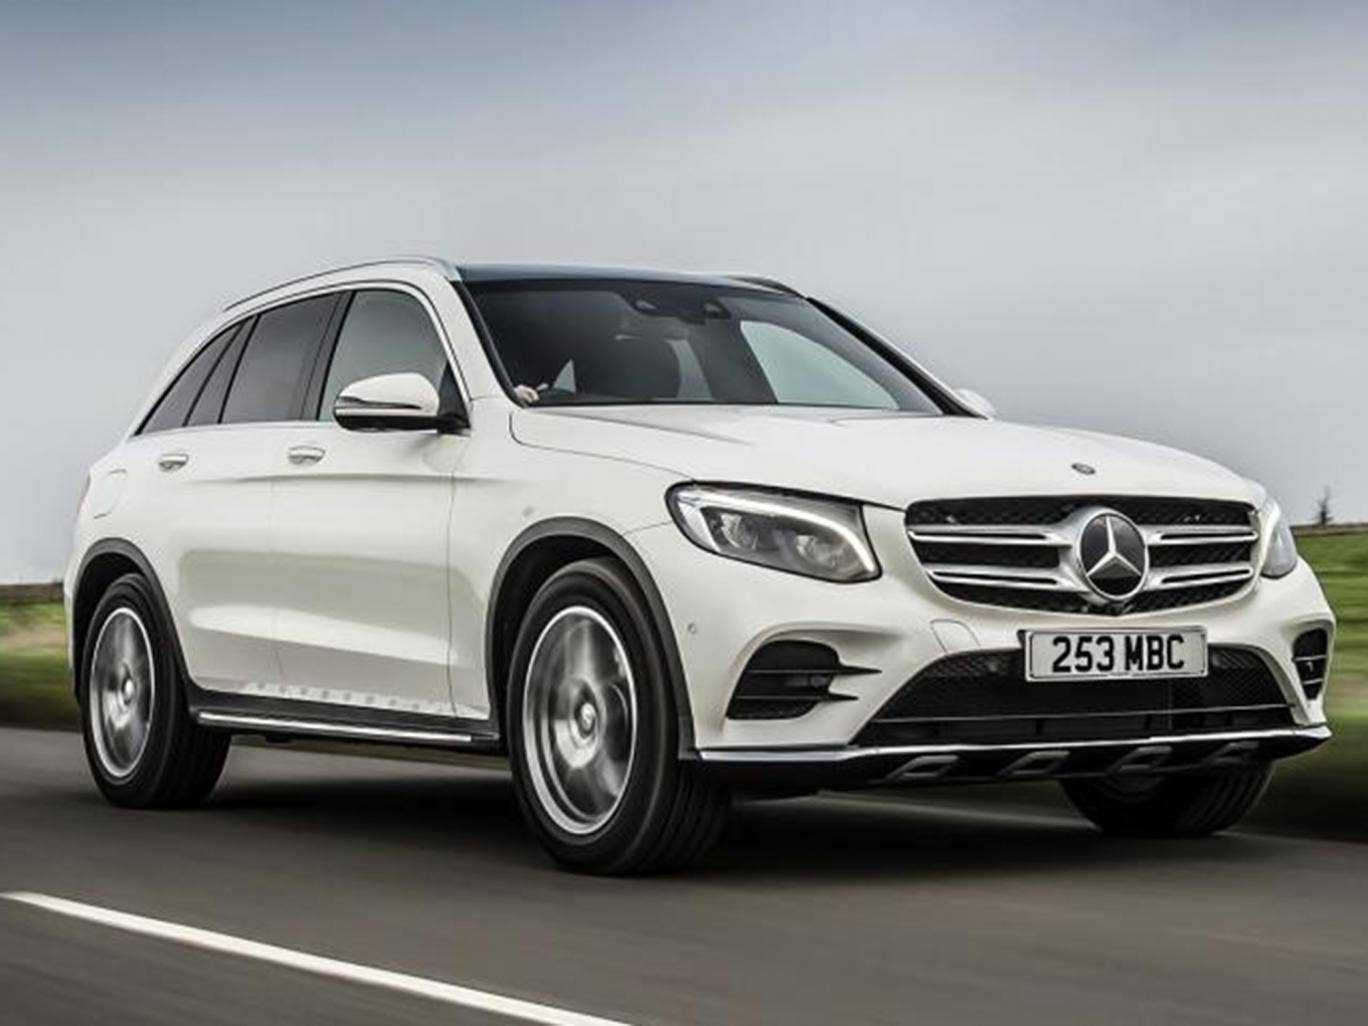 mercedes glc 250d 4matic amg line car review stylish suv takes aim at bmw x3 road tests. Black Bedroom Furniture Sets. Home Design Ideas